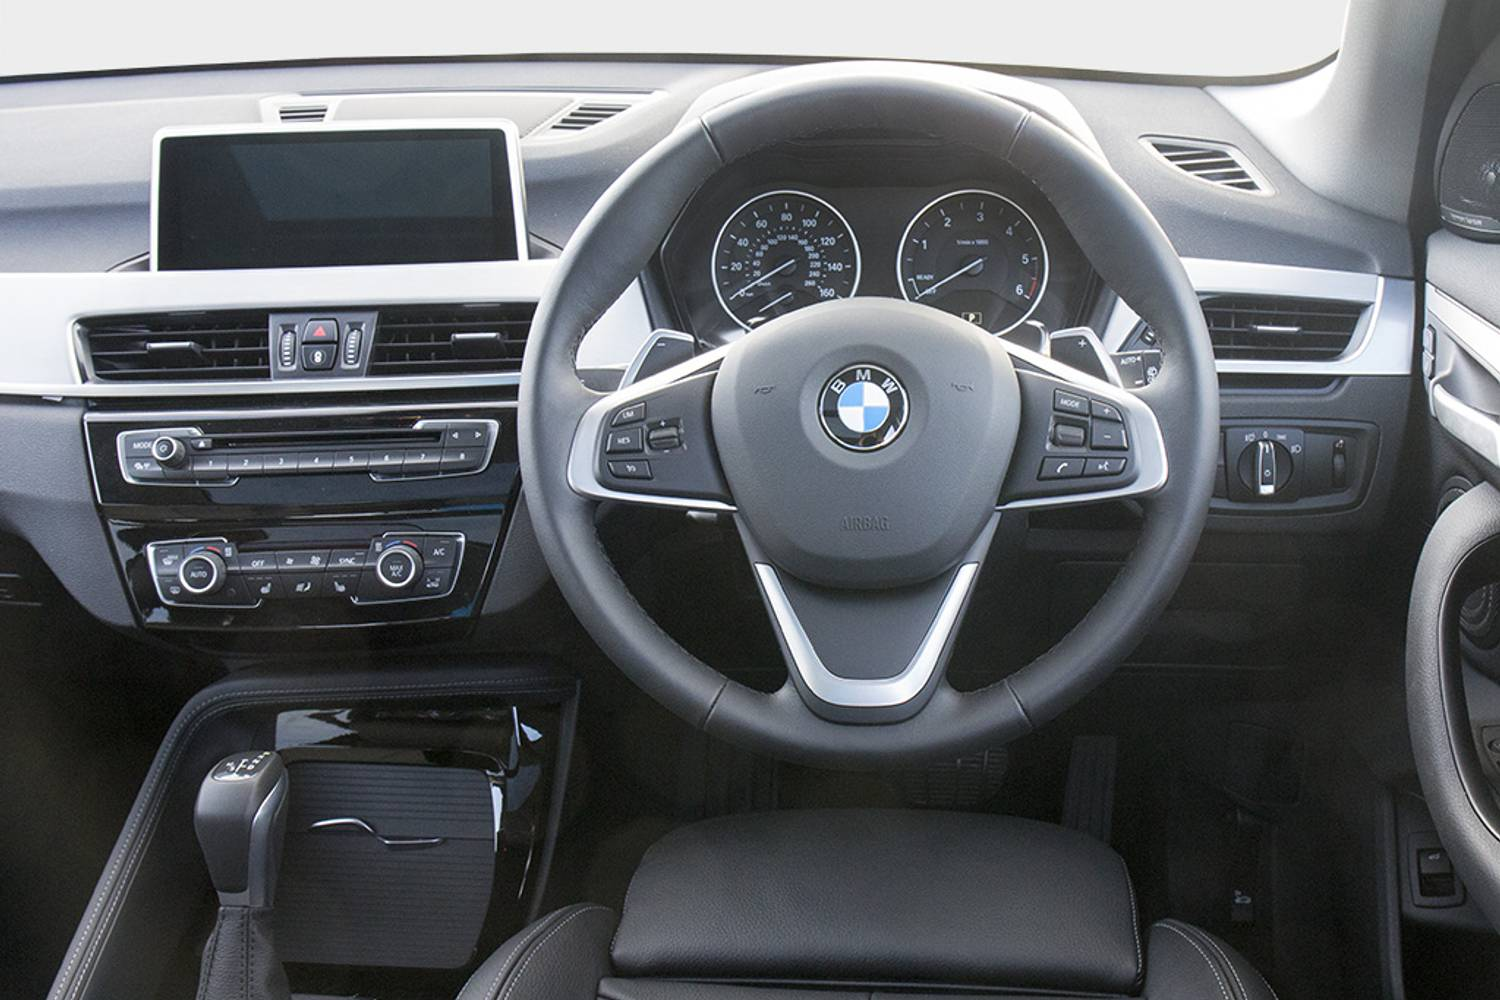 BMW X1 Estate 5dr interior